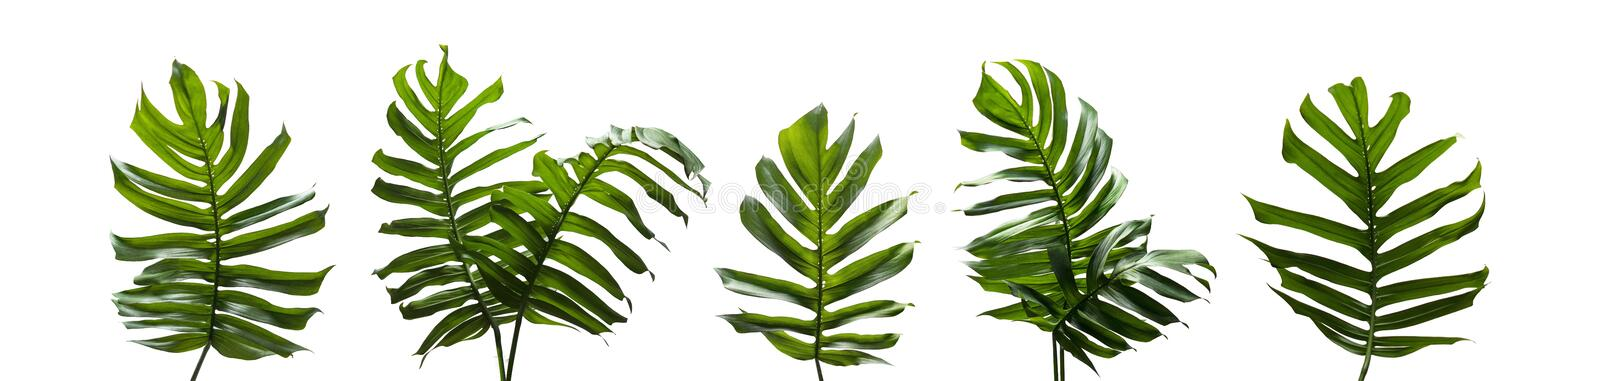 Monstera miltiple, Tropical leaves set isolated on white background, Green leaves of Philodendron, rainforest plant. stock image